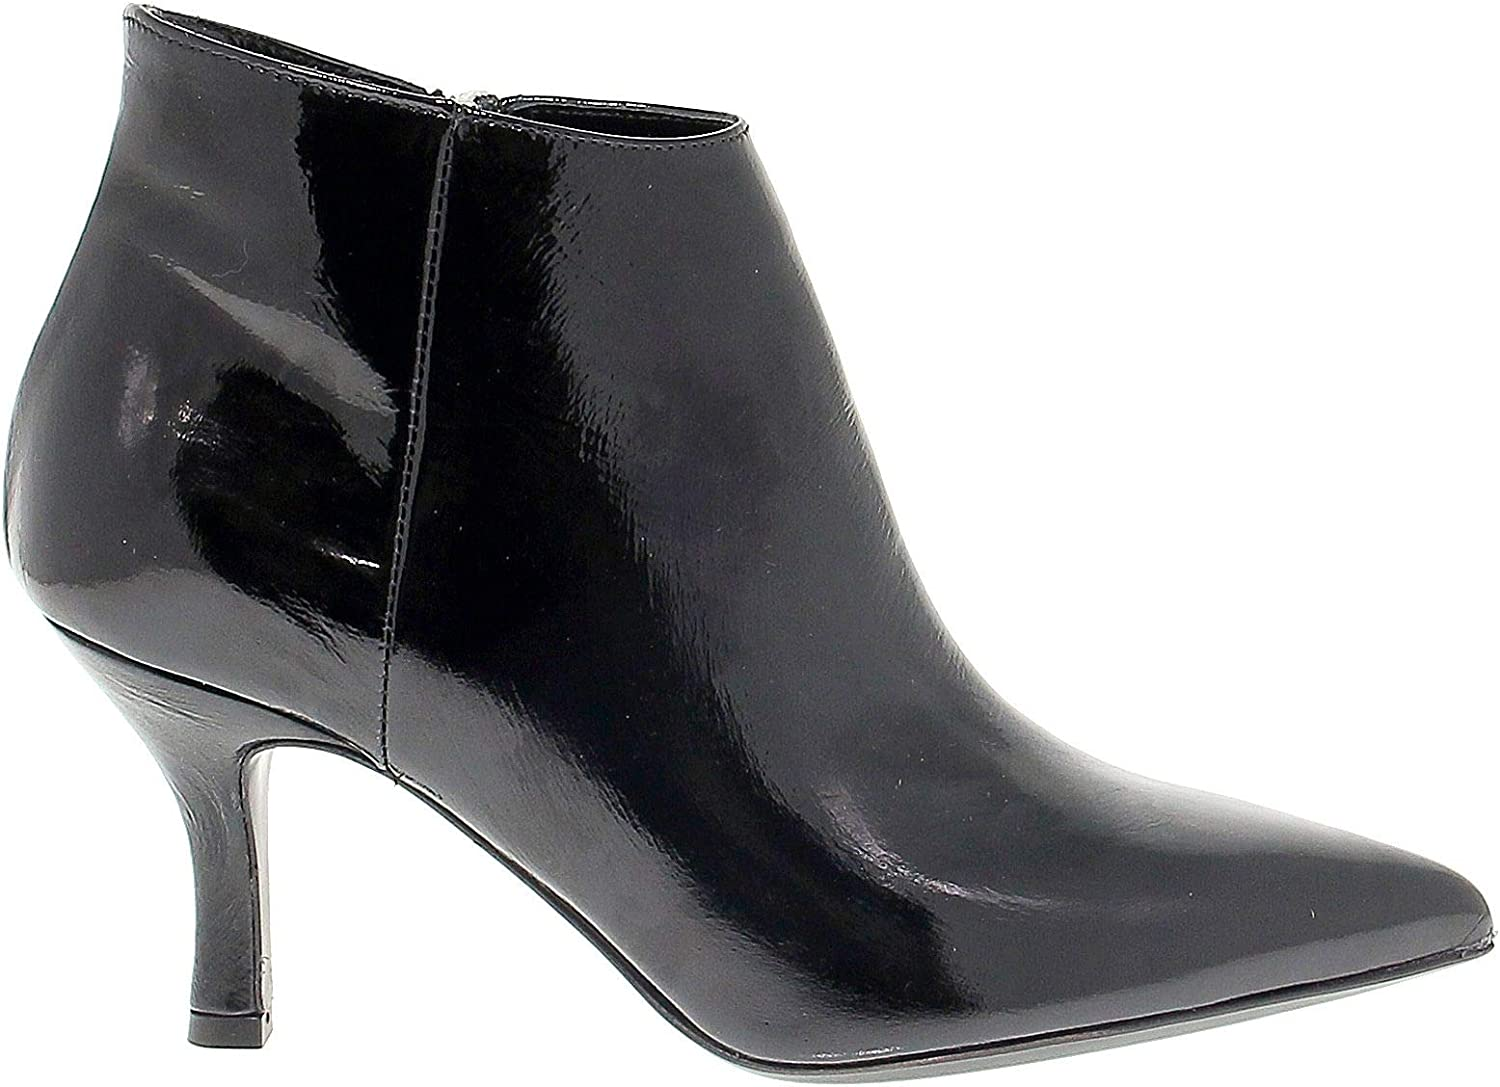 JANET&JANET Women's 42500N Black Patent Leather Ankle Boots